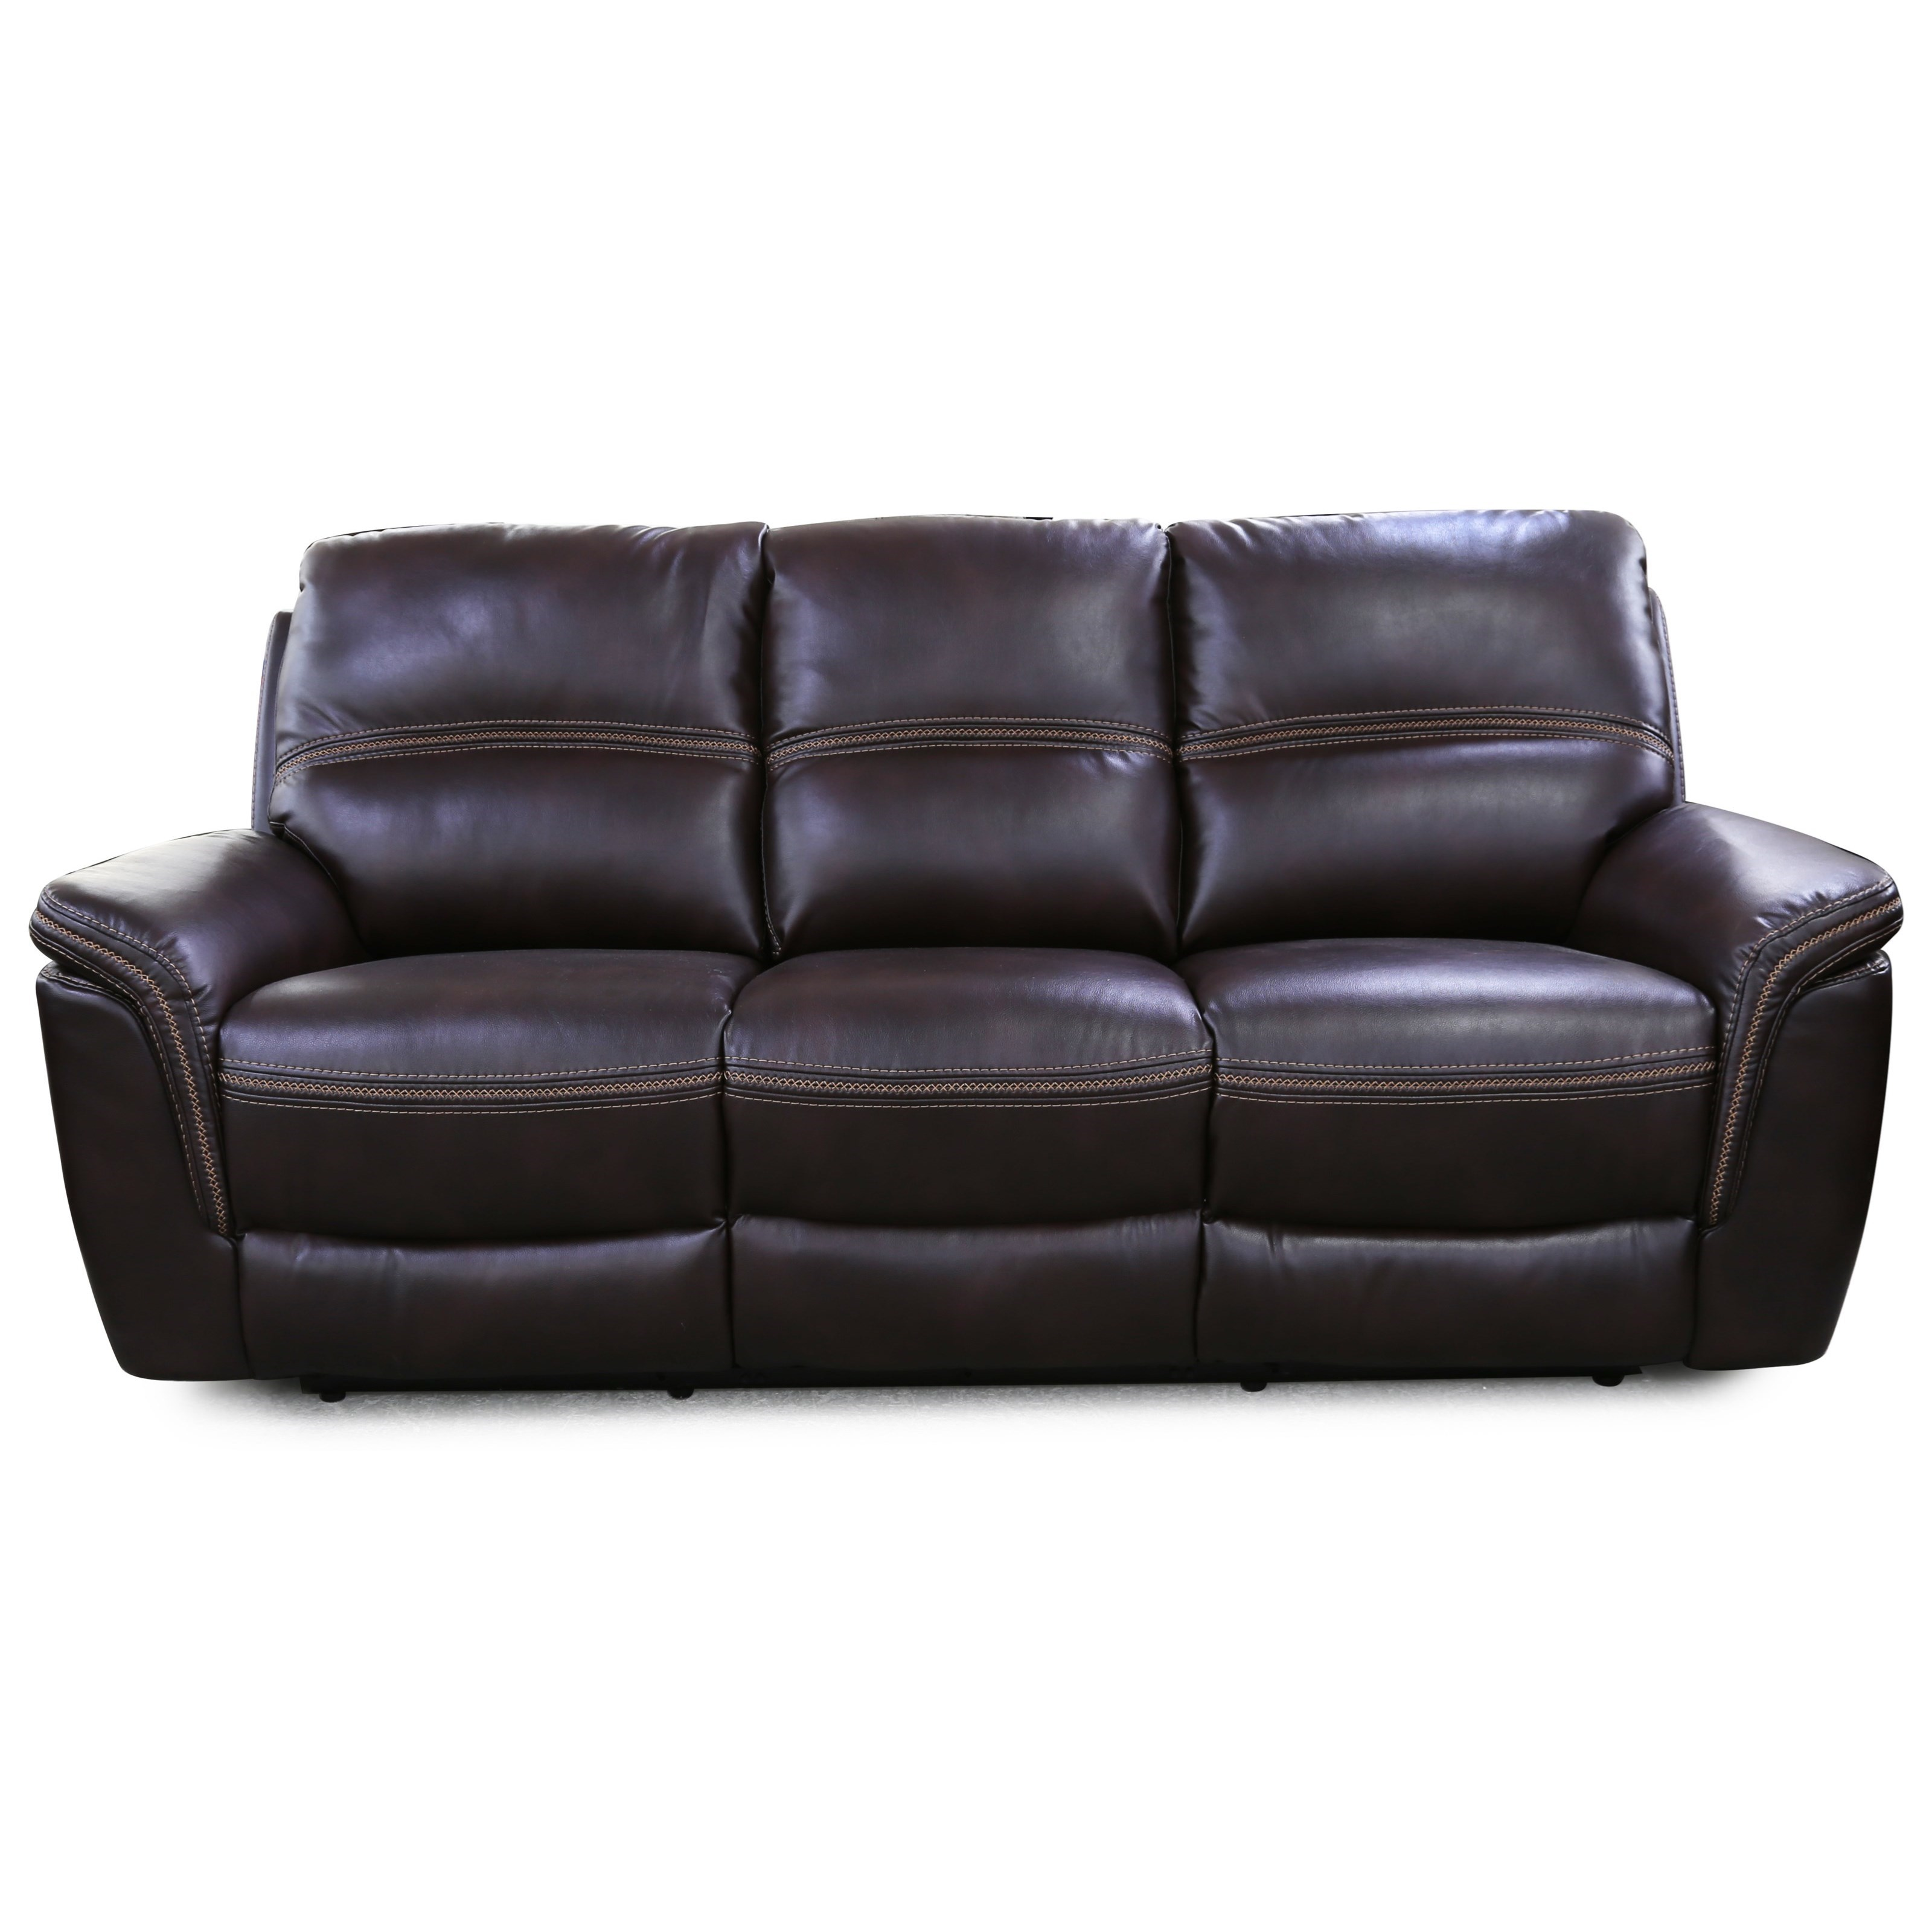 Cheers Sofa Townsend Power Reclining Sofa - Item Number: 5571-L3-2EZ 35749